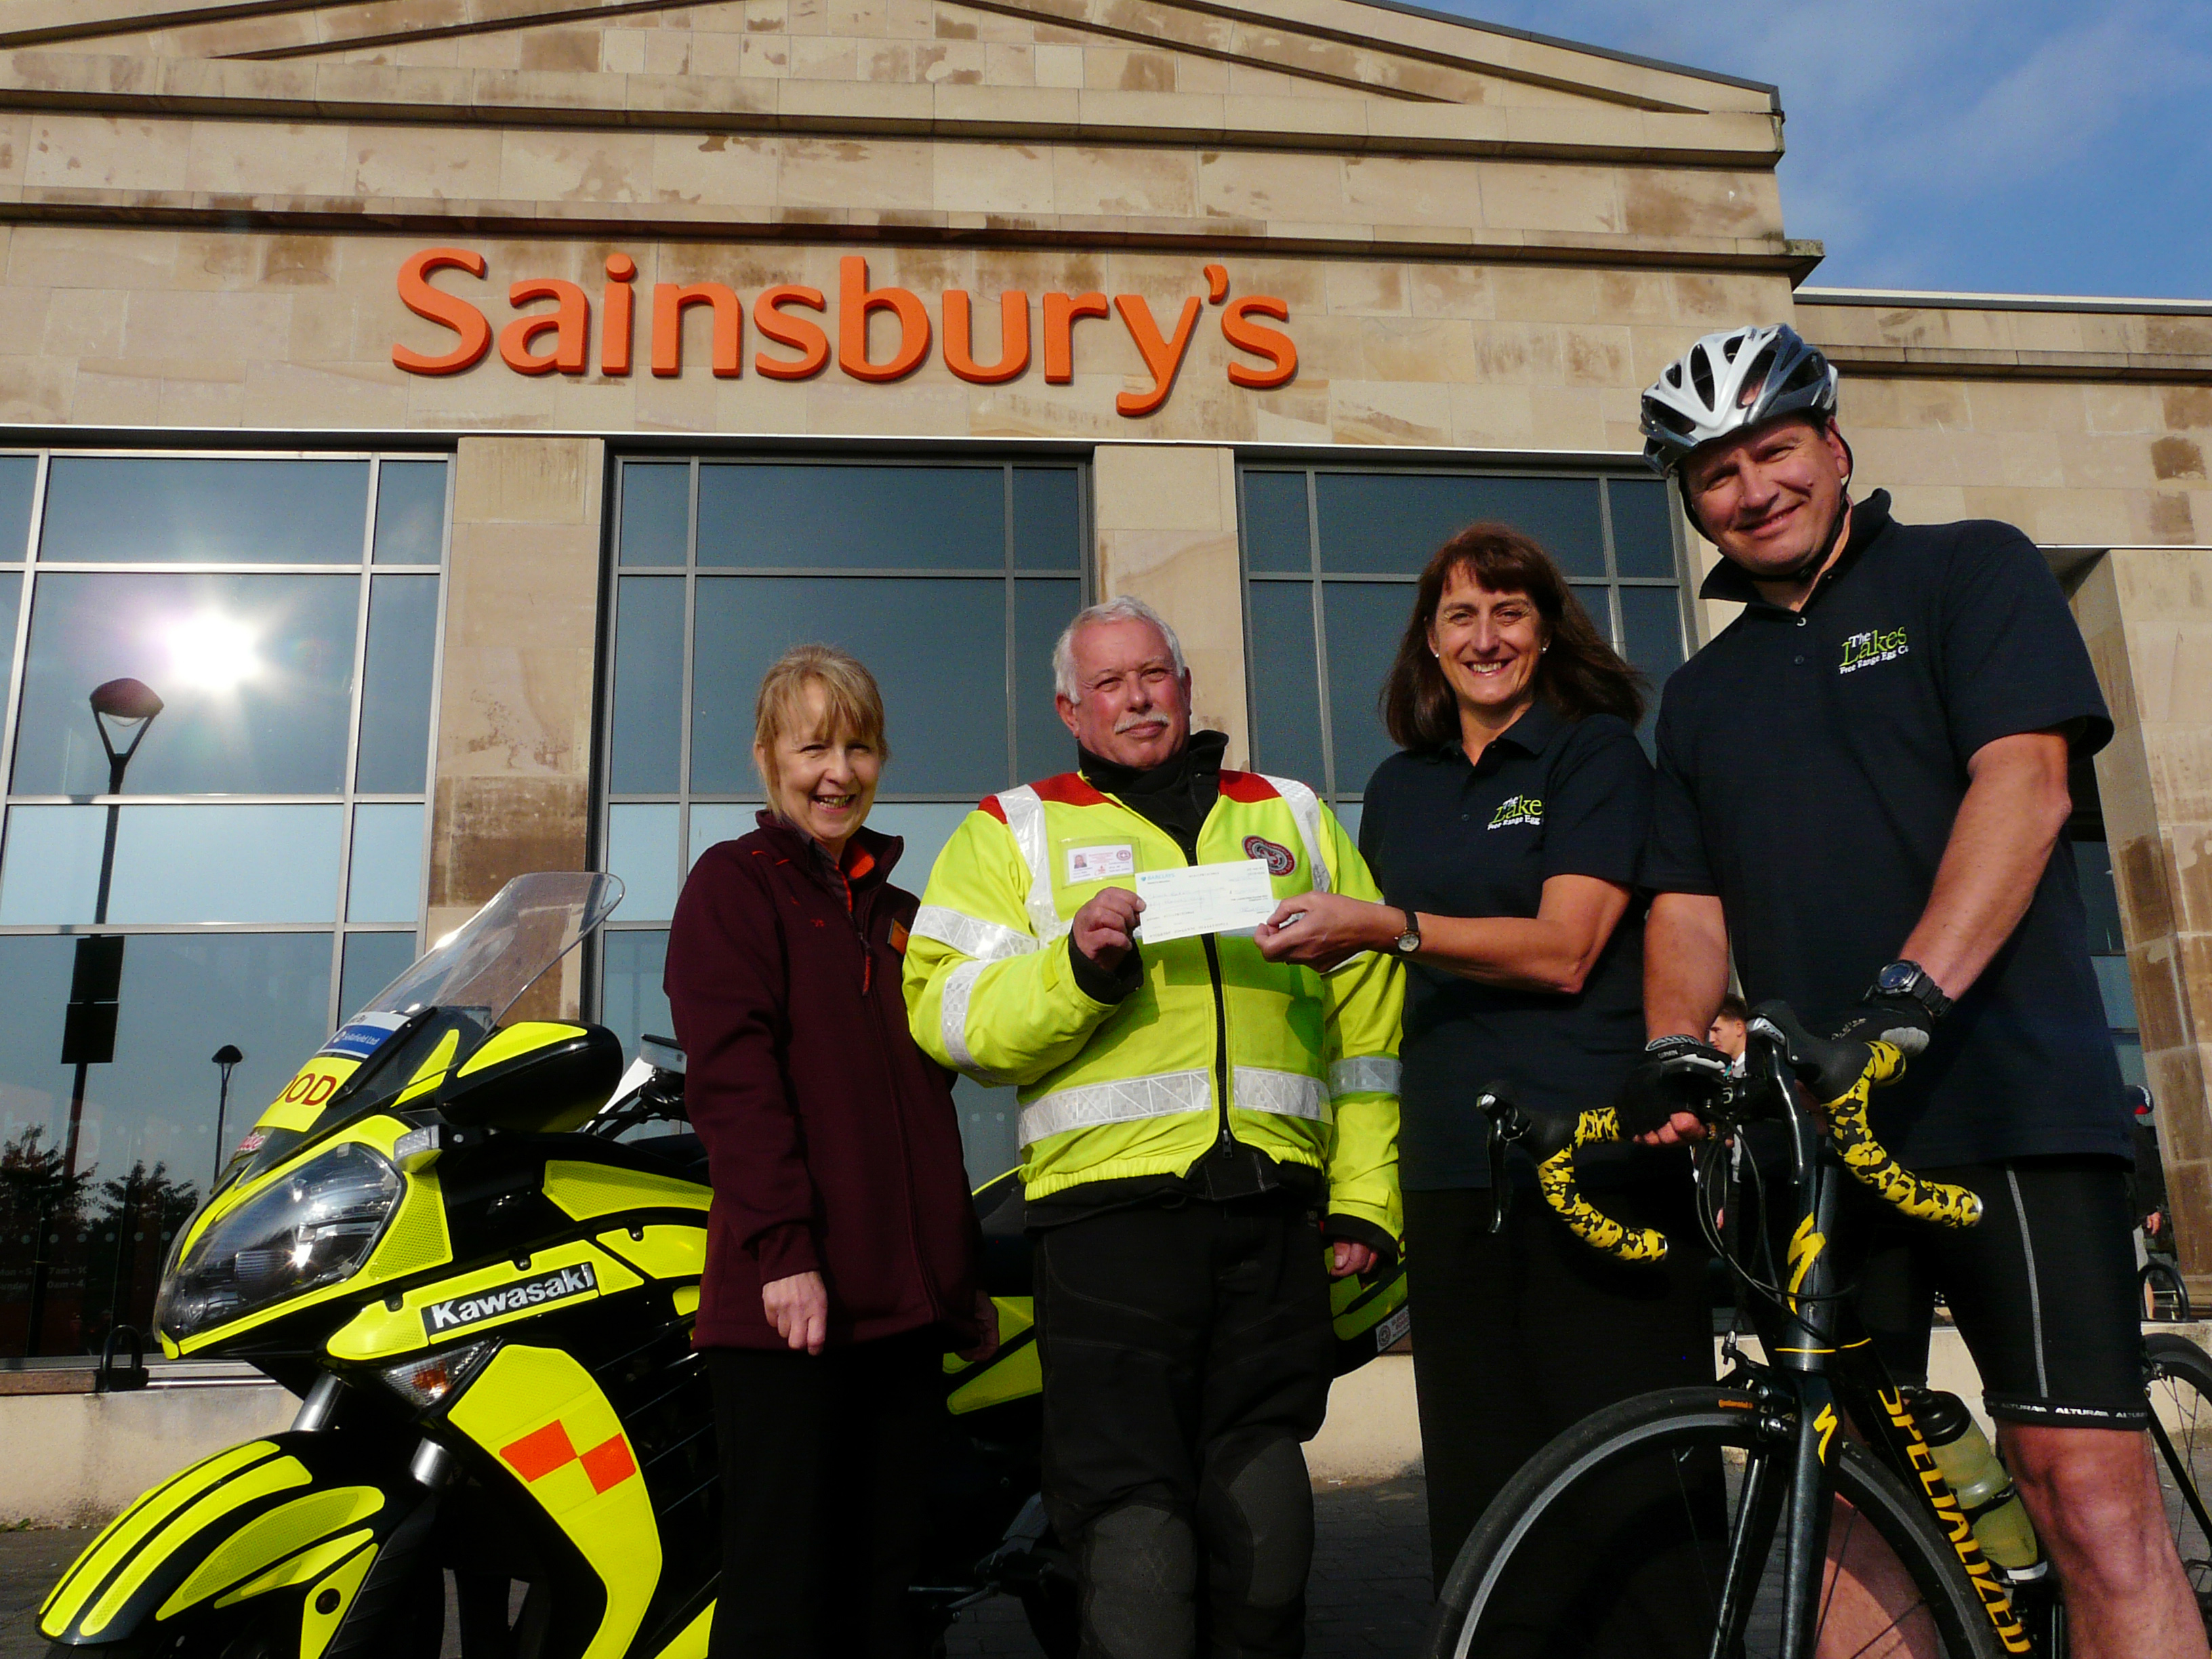 Blood Bikes Cumbria with Sainsbury's and Lakes Free Range Egg Company at cheque presentation